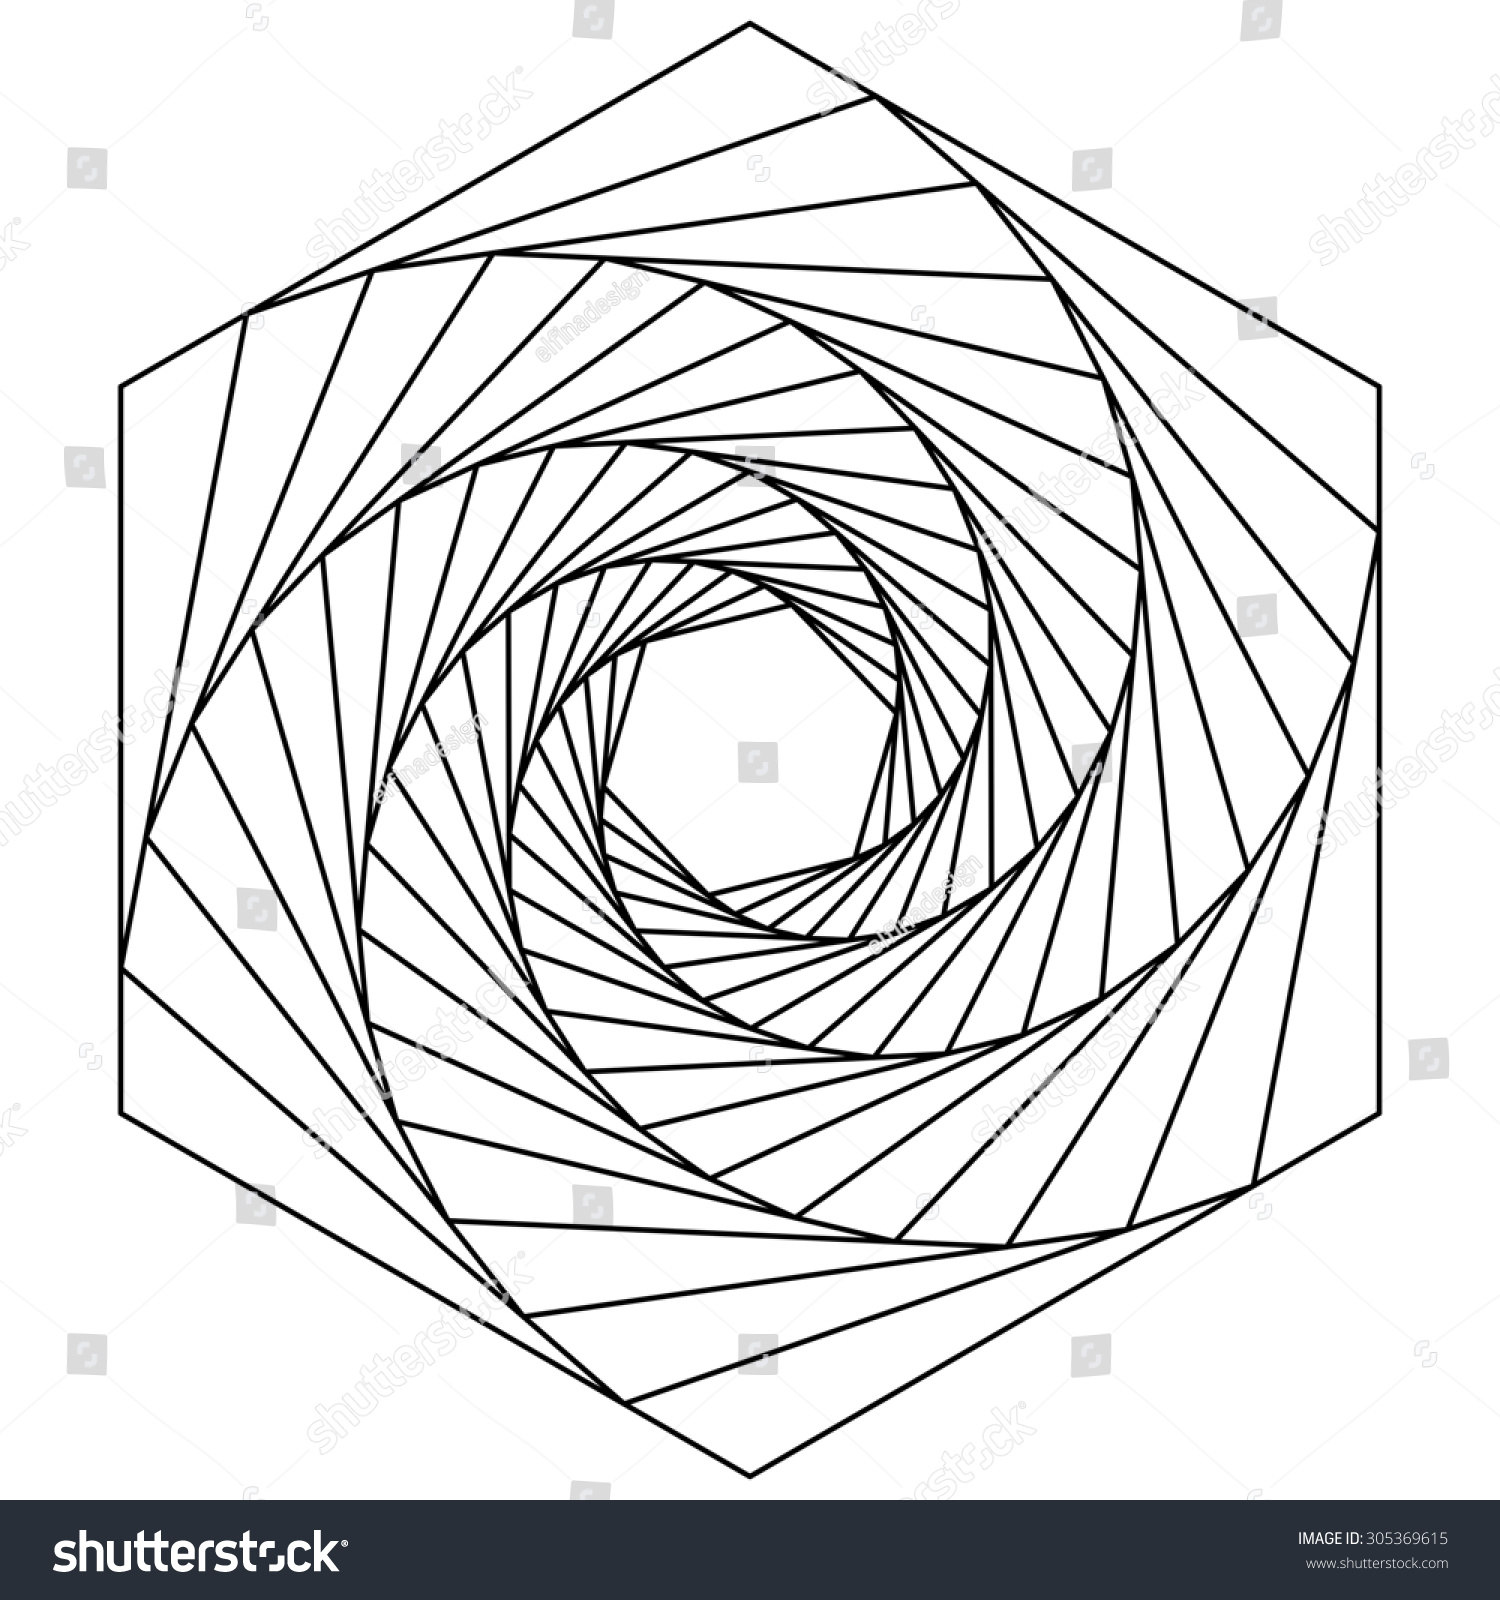 Vector Drawing Lines Game : Hexagon spiral line drawing logo design stock vector